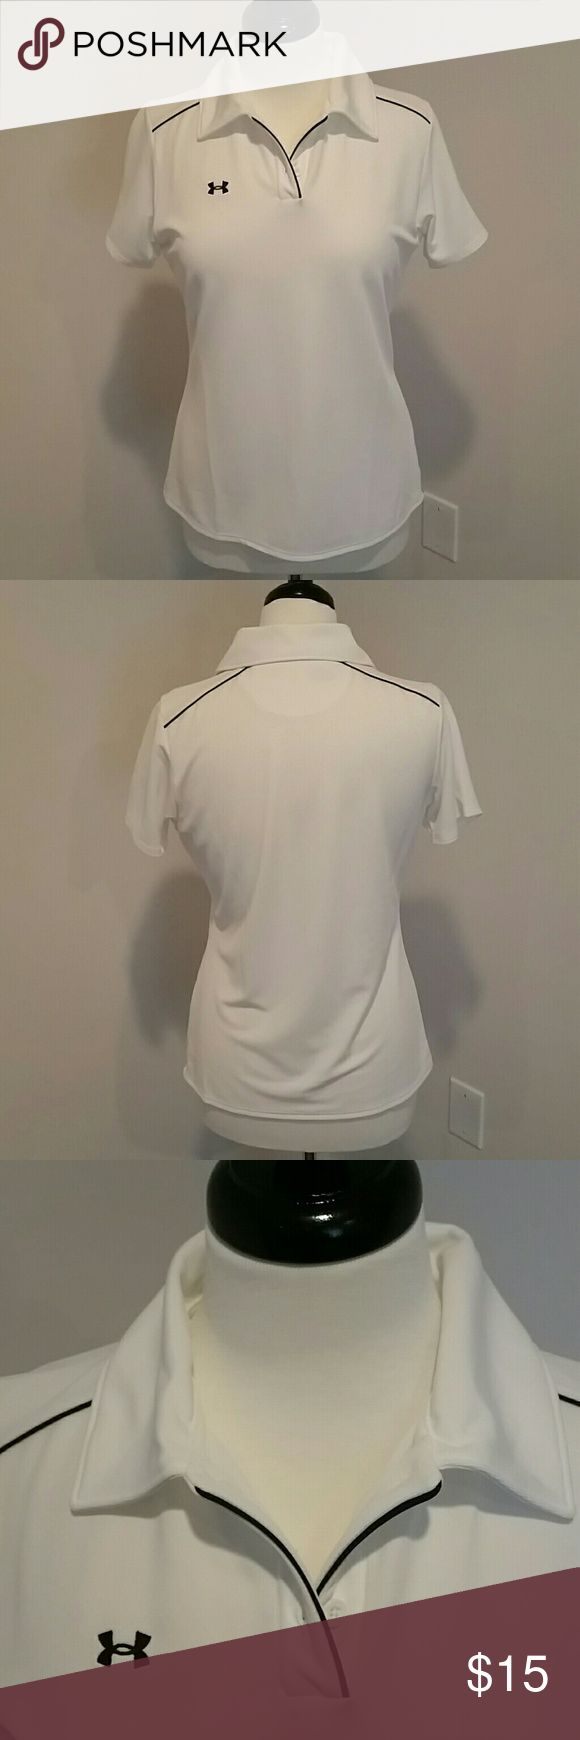 UNDER ARMOR WHITE WOMEN GOLF SHIRT UNDER ARMOR WHITE SHORT SLEEVE GOLF SHIRT.  GREAT CONDITION.  NO YELLOWING UNDER ARMS OR NECK. Under Armour Tops Tees - Short Sleeve